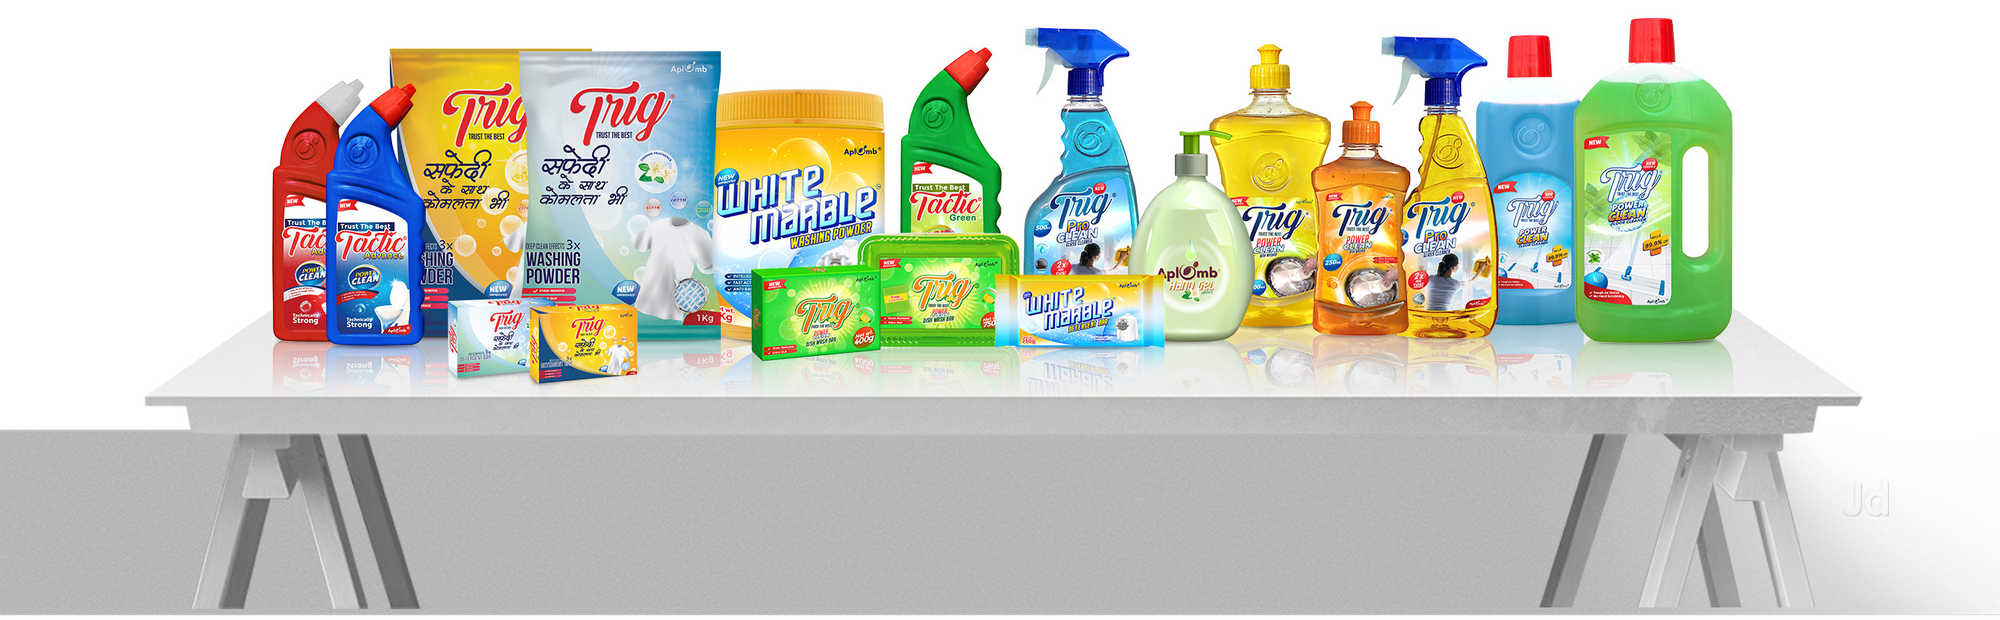 Top 20 Phenyl Manufacturers in Indore - Justdial